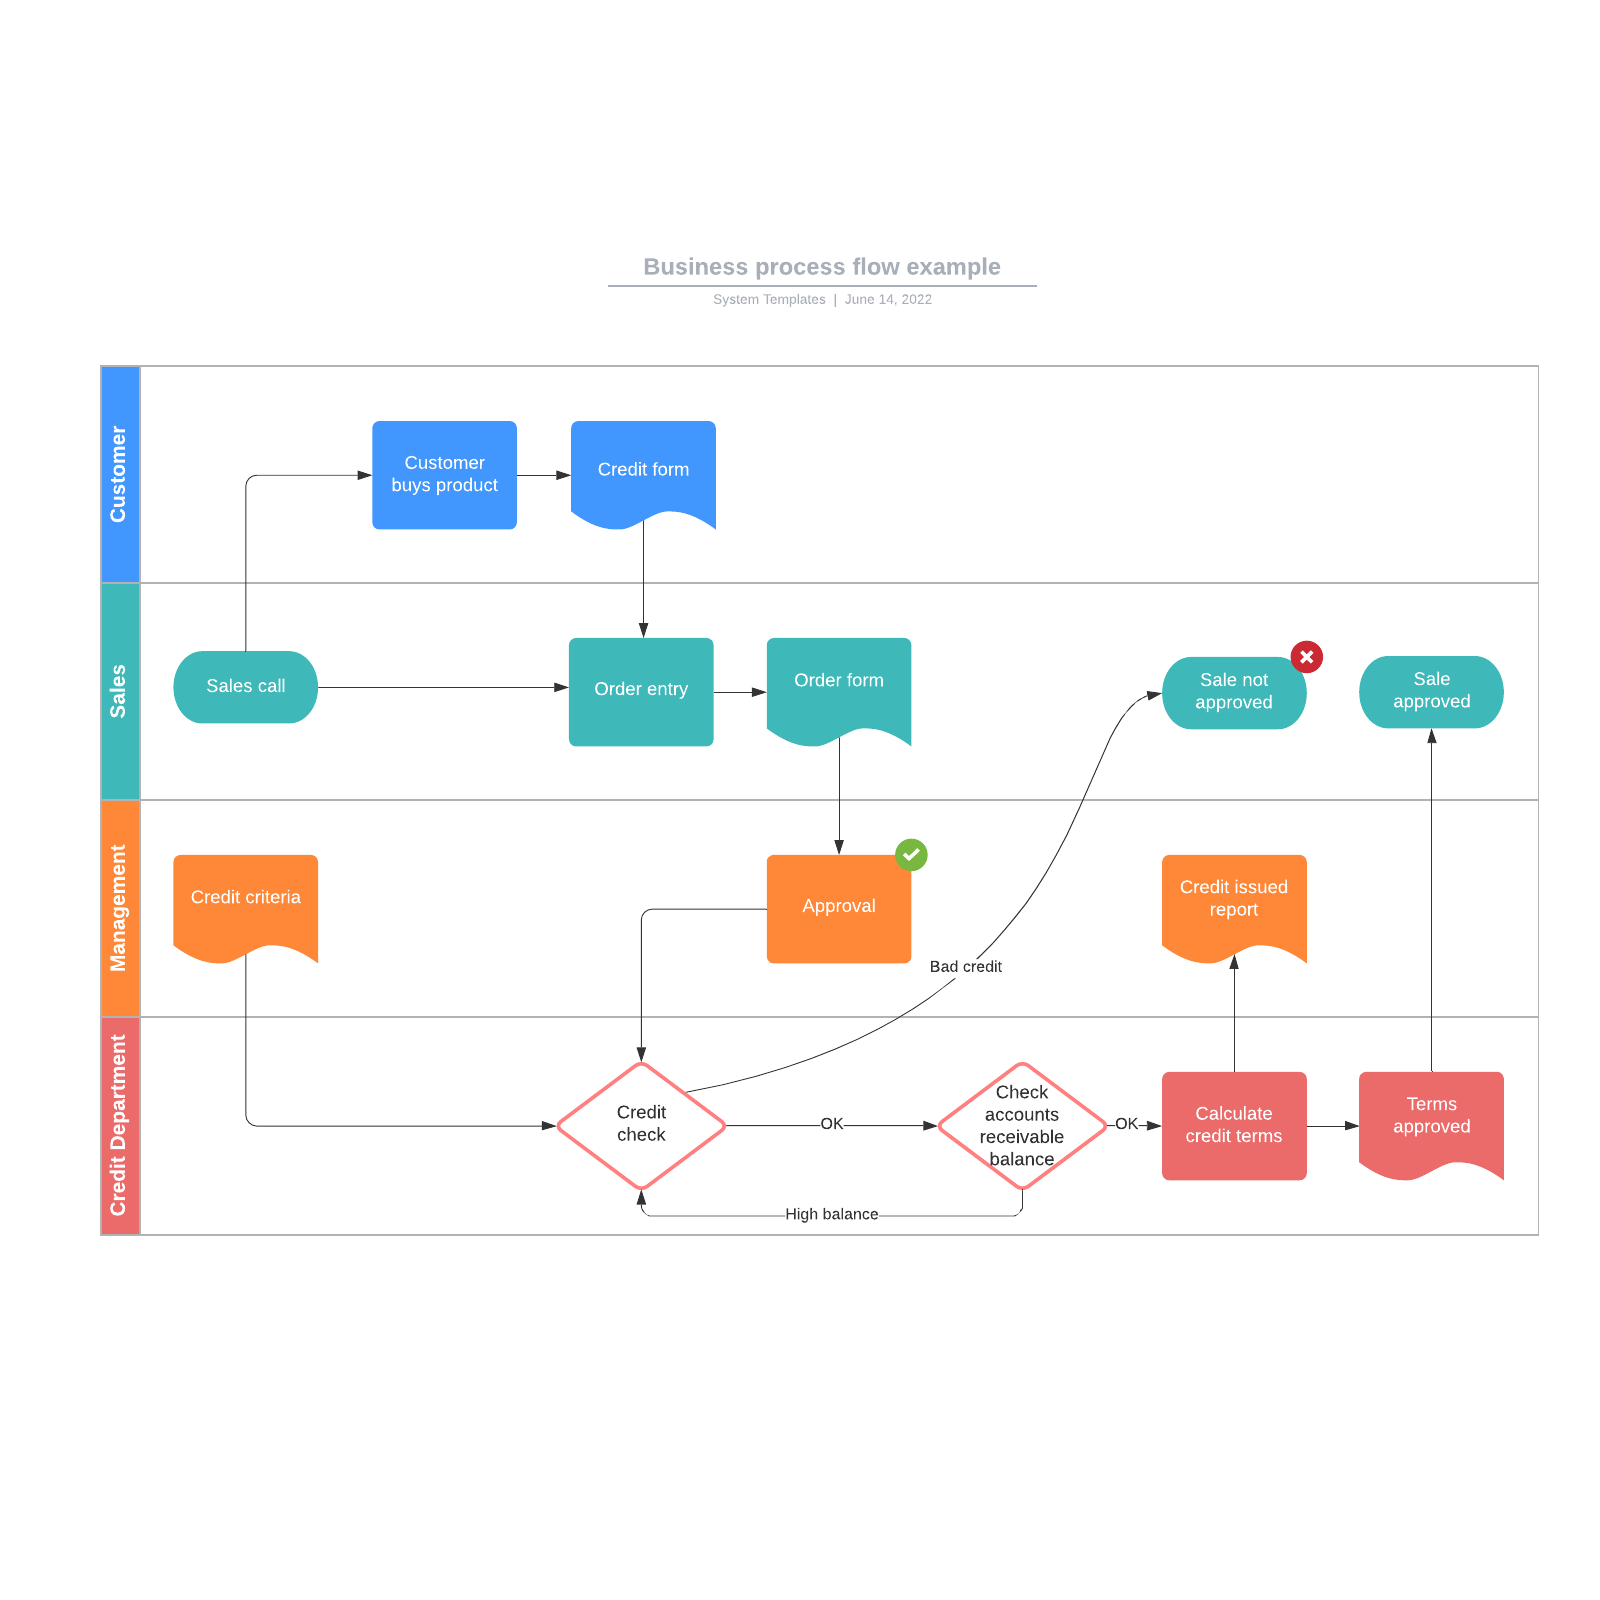 Business process flow example